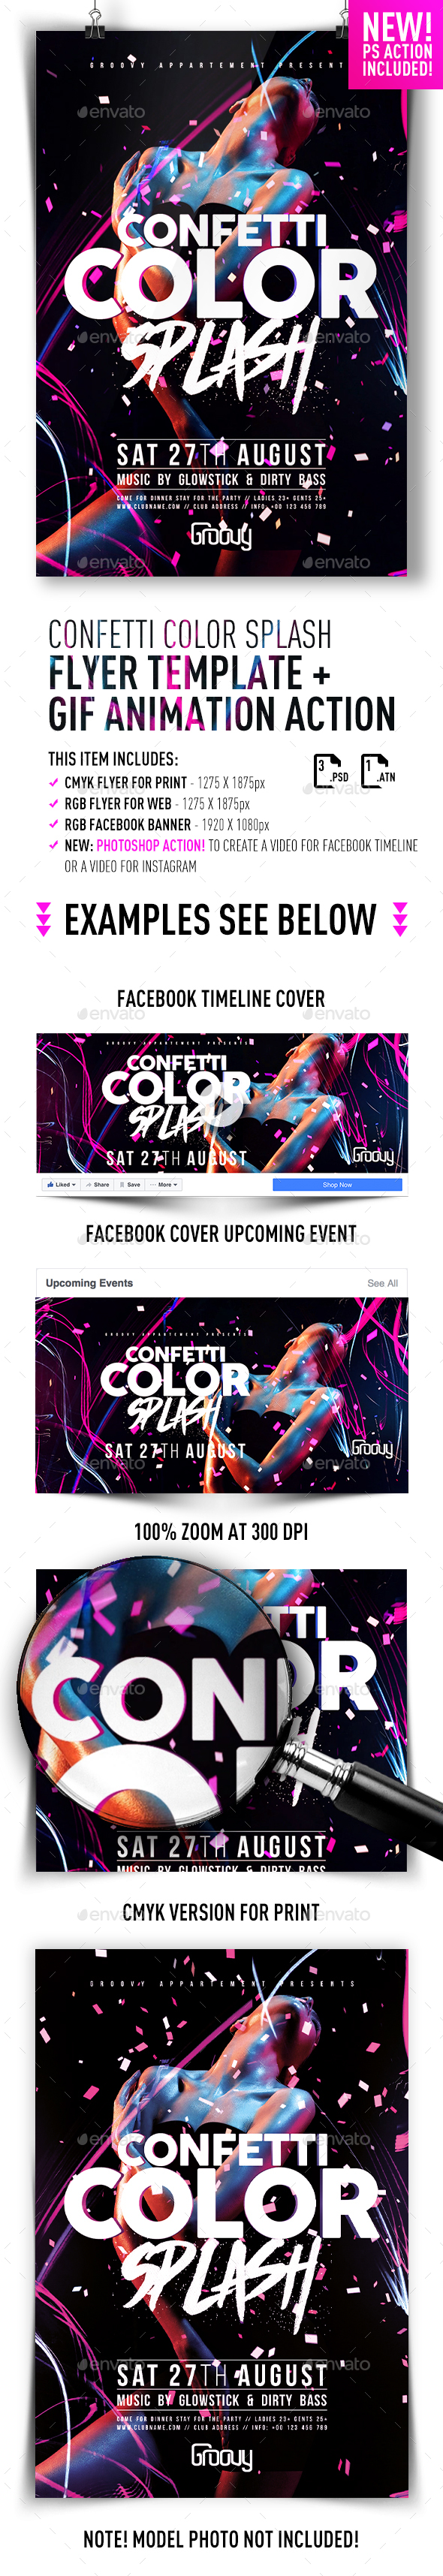 Confetti Color Splash Flyer + GIF Animation Action - Clubs & Parties Events